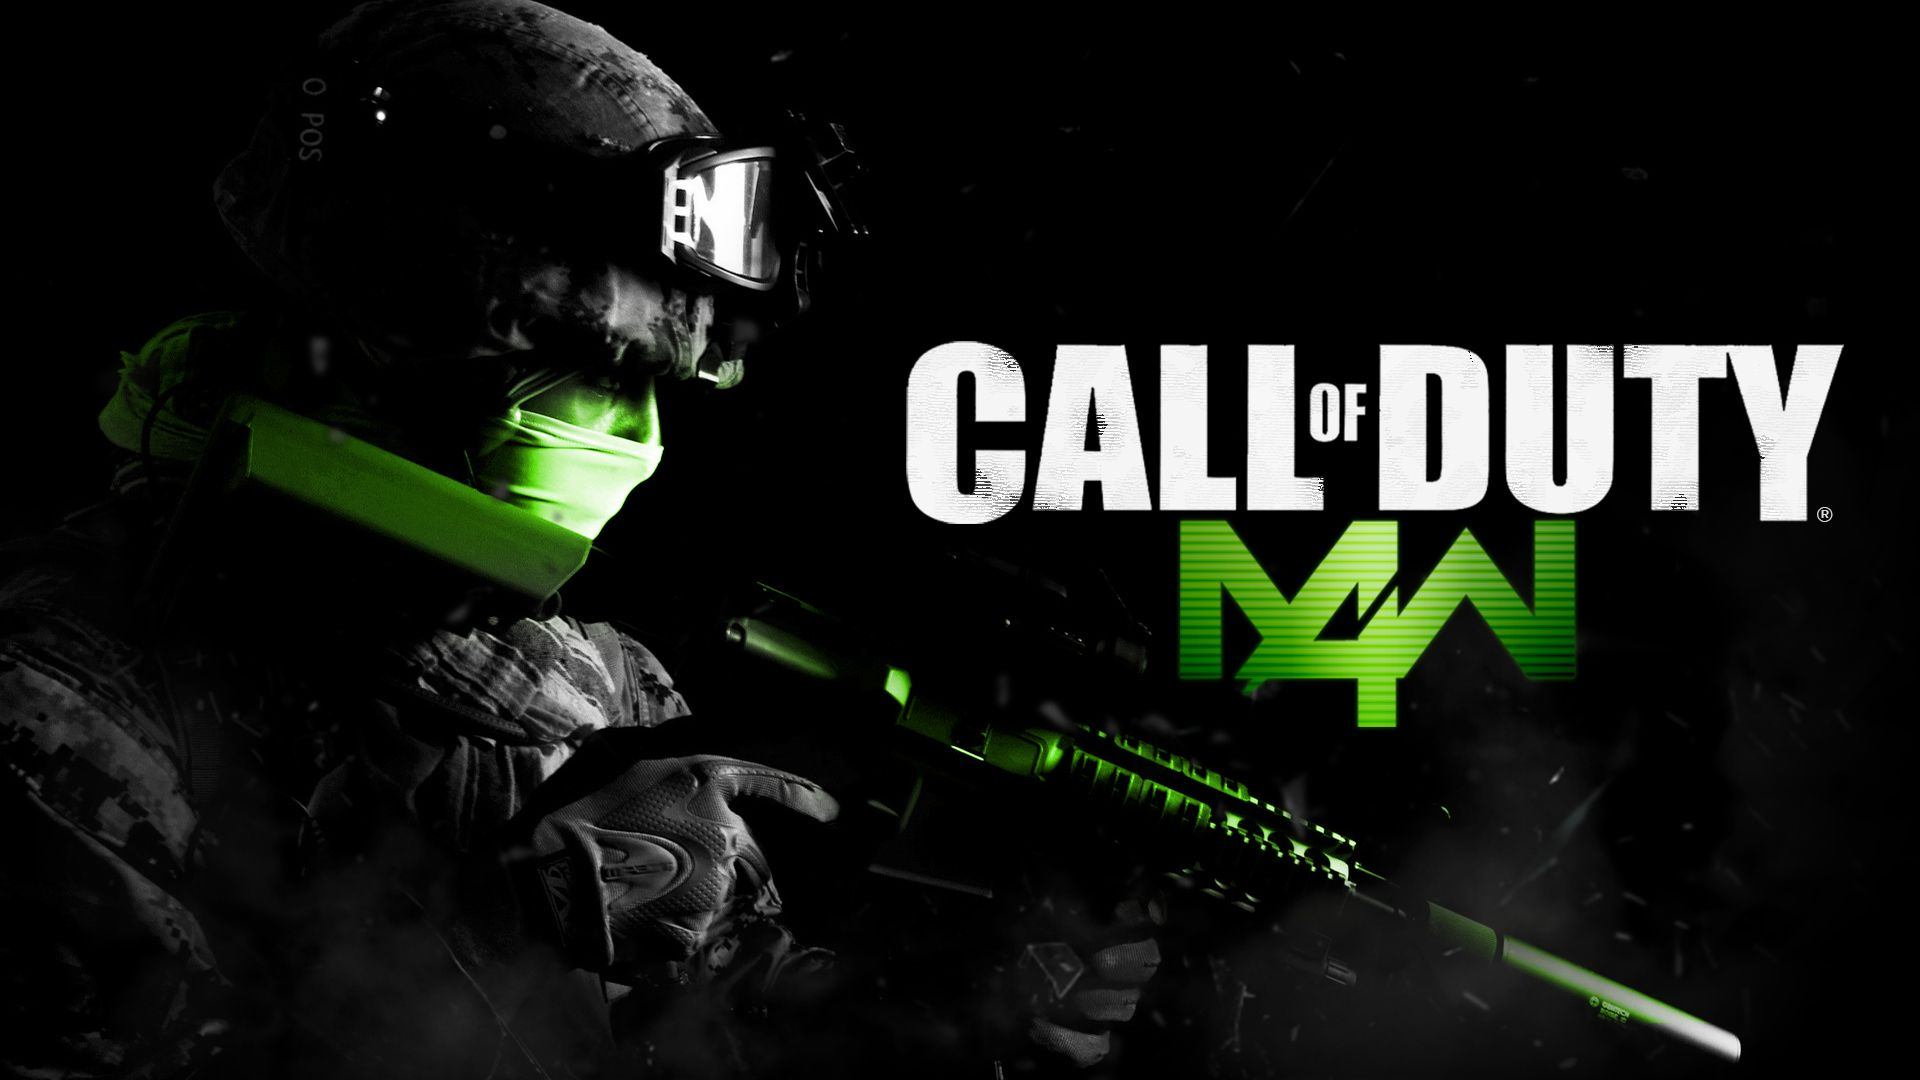 Call Of Duty Modern Warfare 4 Game Hd Live Hd Wallpapers